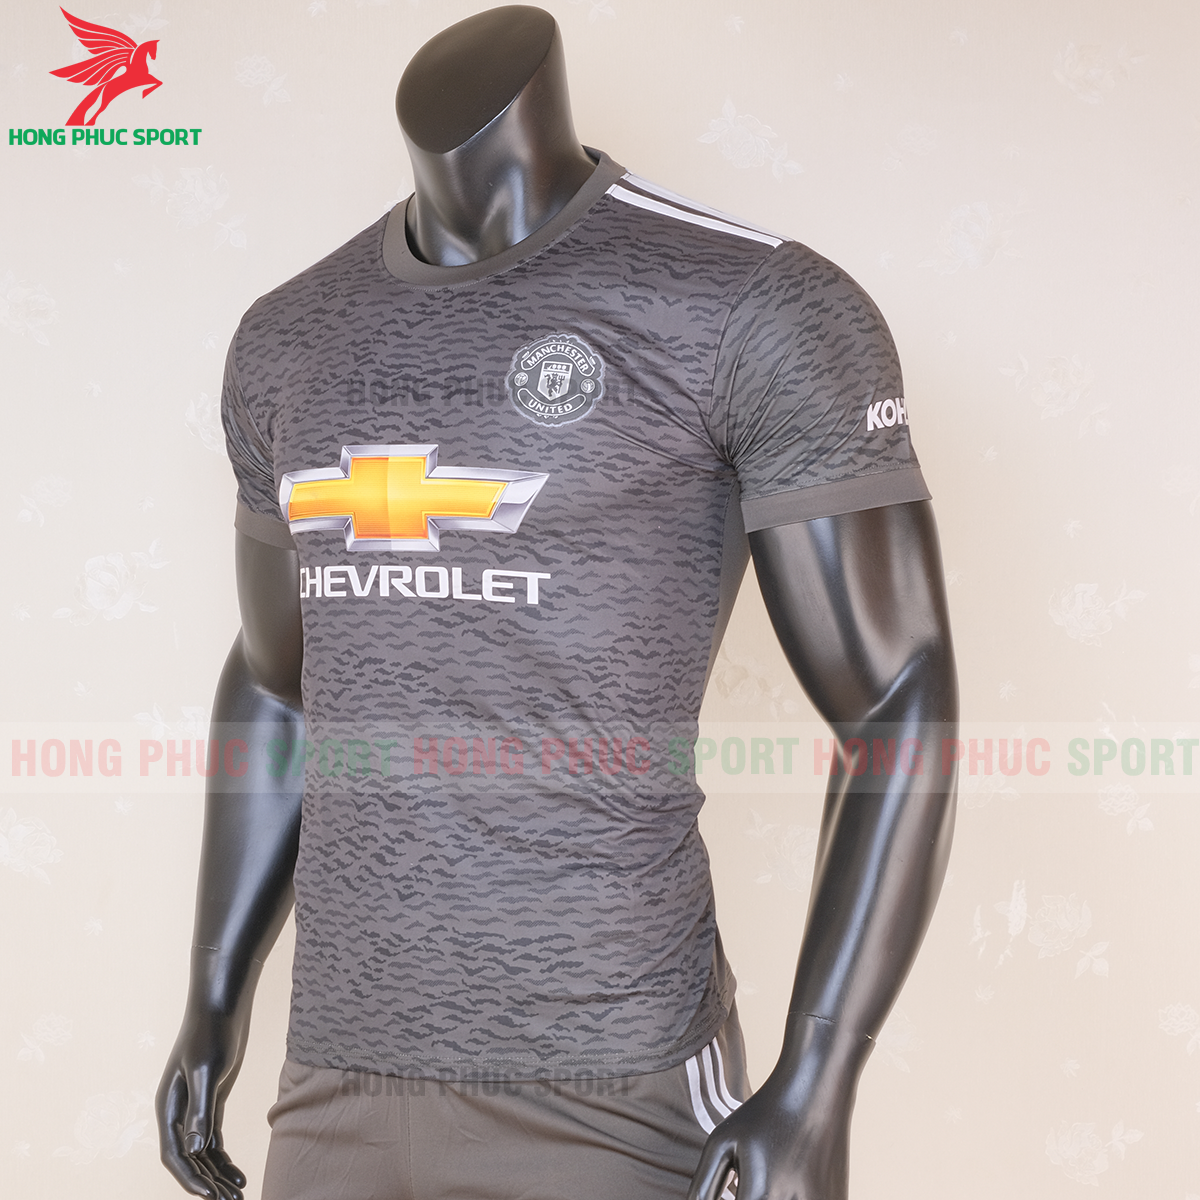 https://cdn.hongphucsport.com/unsafe/s4.shopbay.vn/files/285/ao-bong-da-manchester-united-2020-san-khach-3-5f6c055f41dcf.png